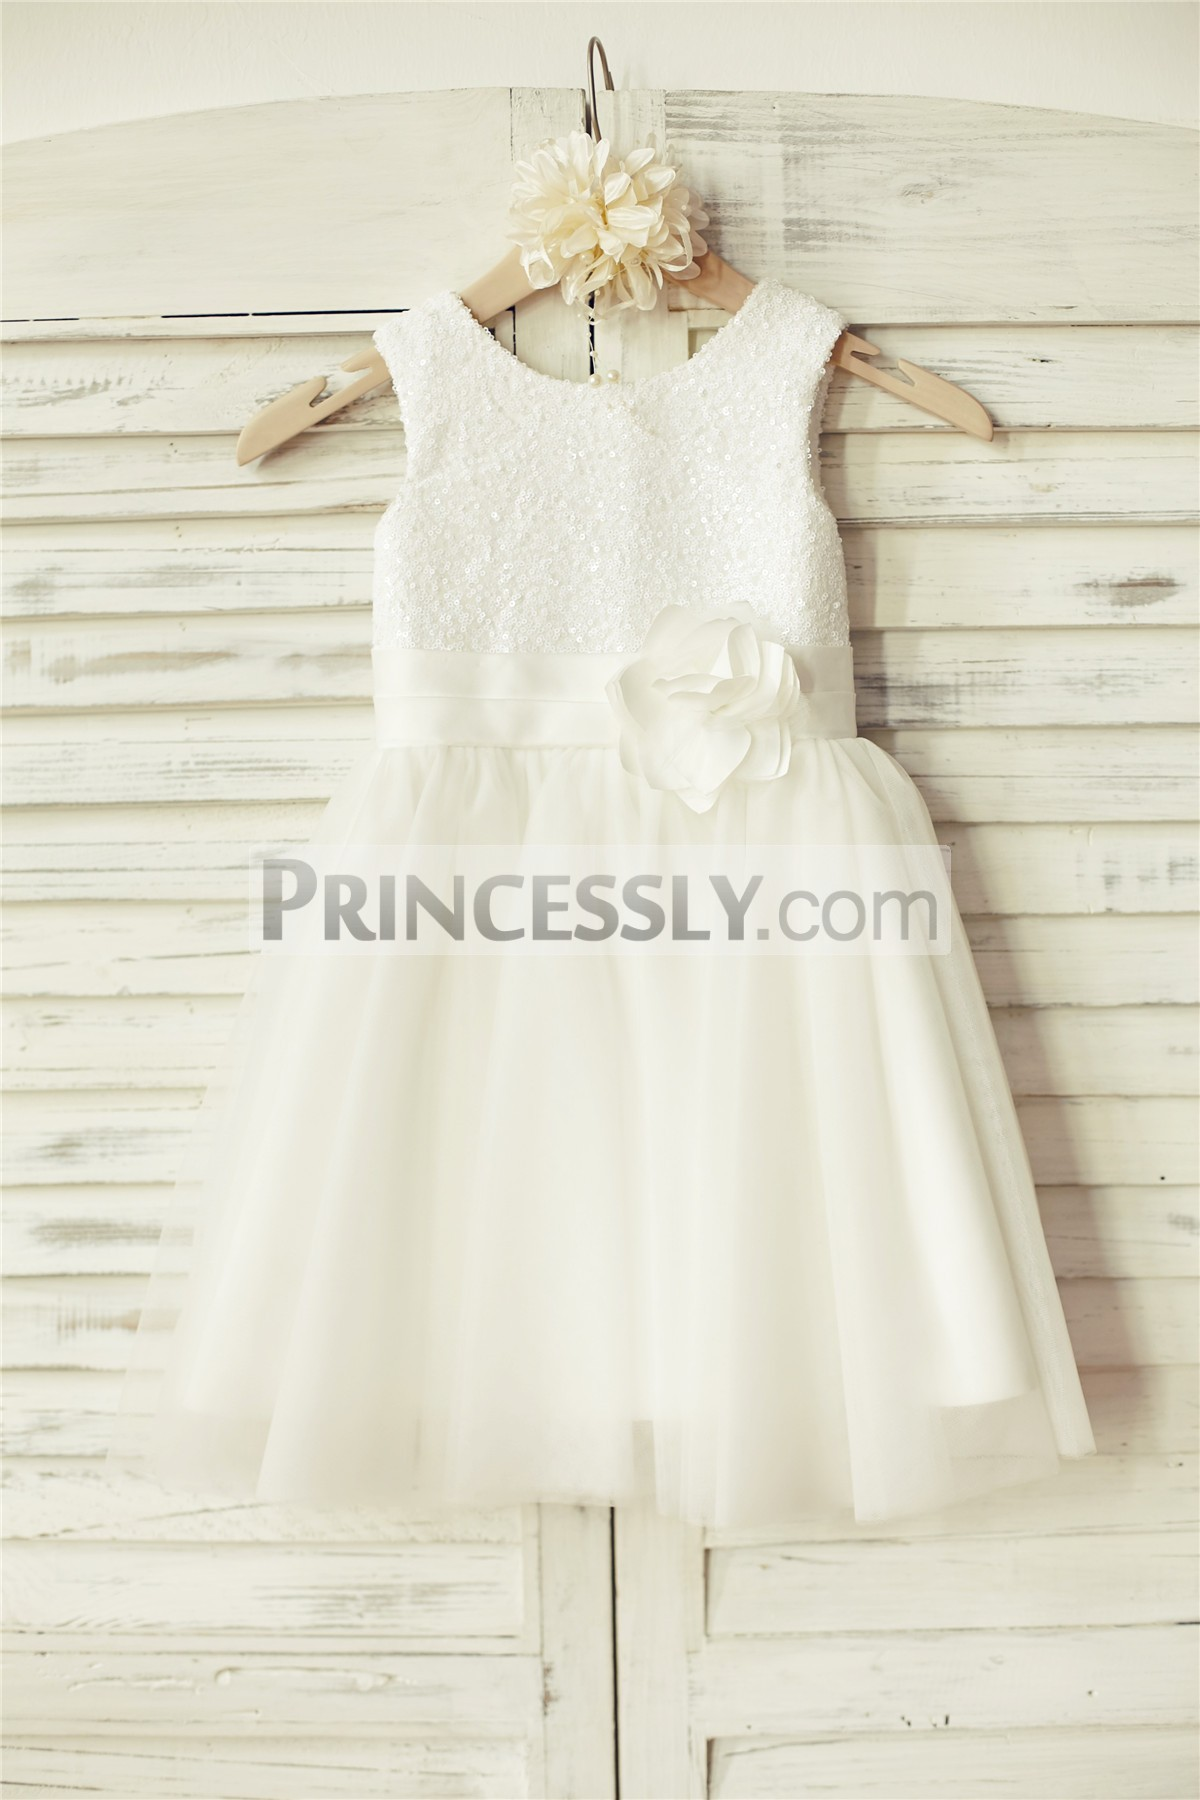 Ivory sequins tulle wedding baby girl dress with belt and flower